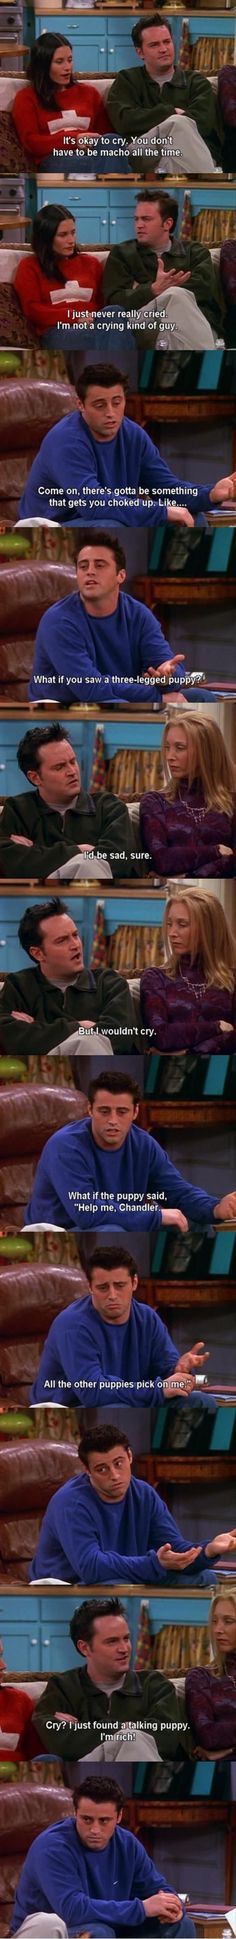 Ofcourse, boys don't cry http://ibeebz.com